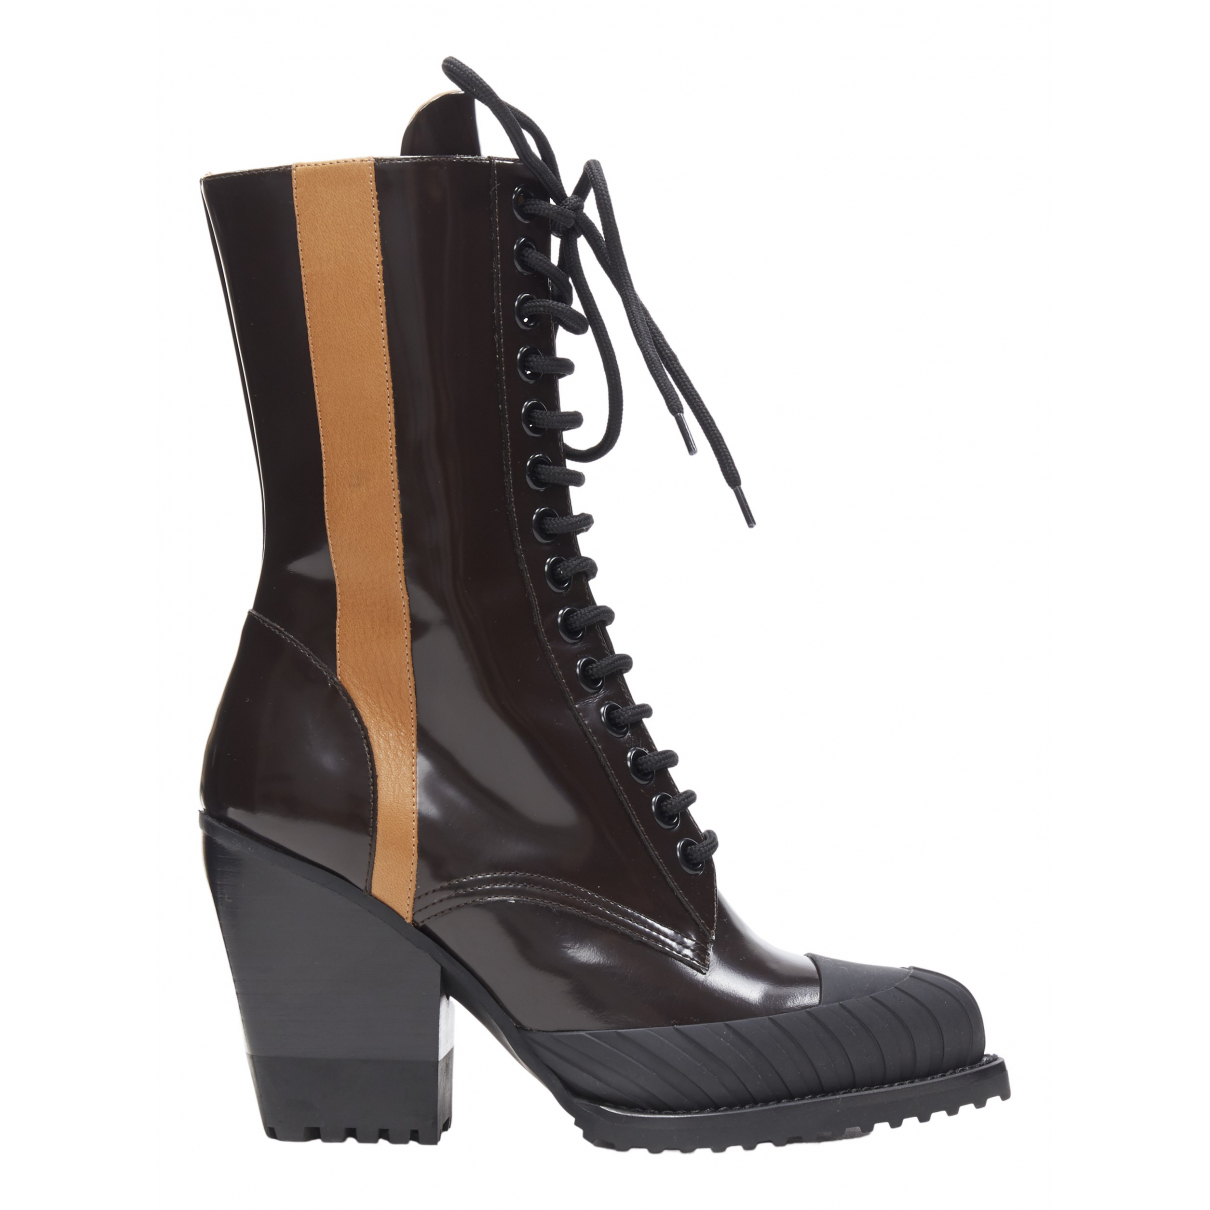 Chloé \N Brown Leather Boots for Women 38 EU